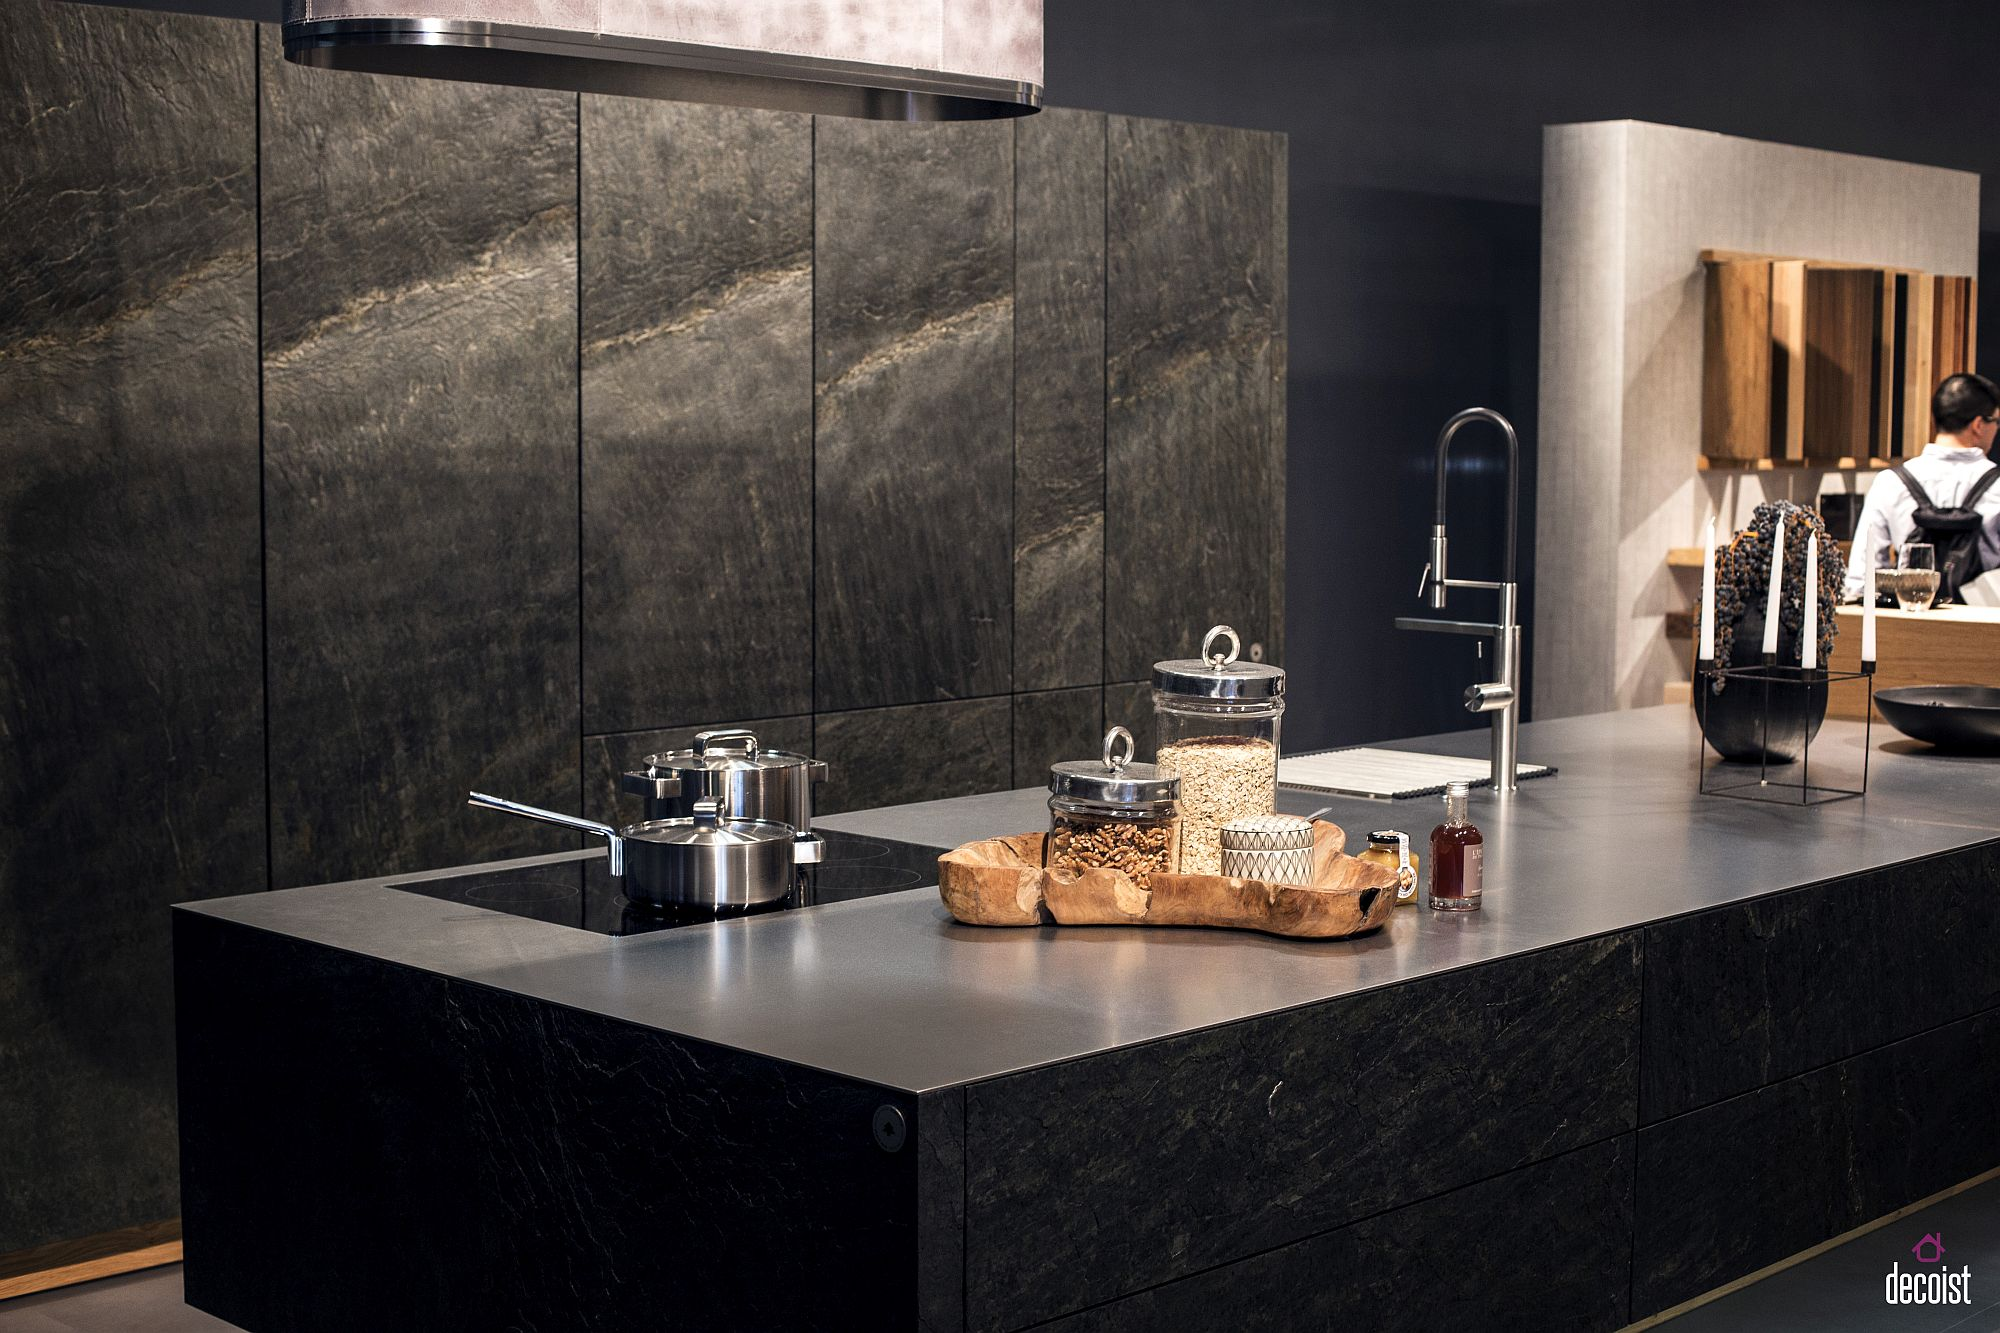 Stone-kitchen-island-cabinets-in-matching-finish-give-the-interior-an-exotic-look